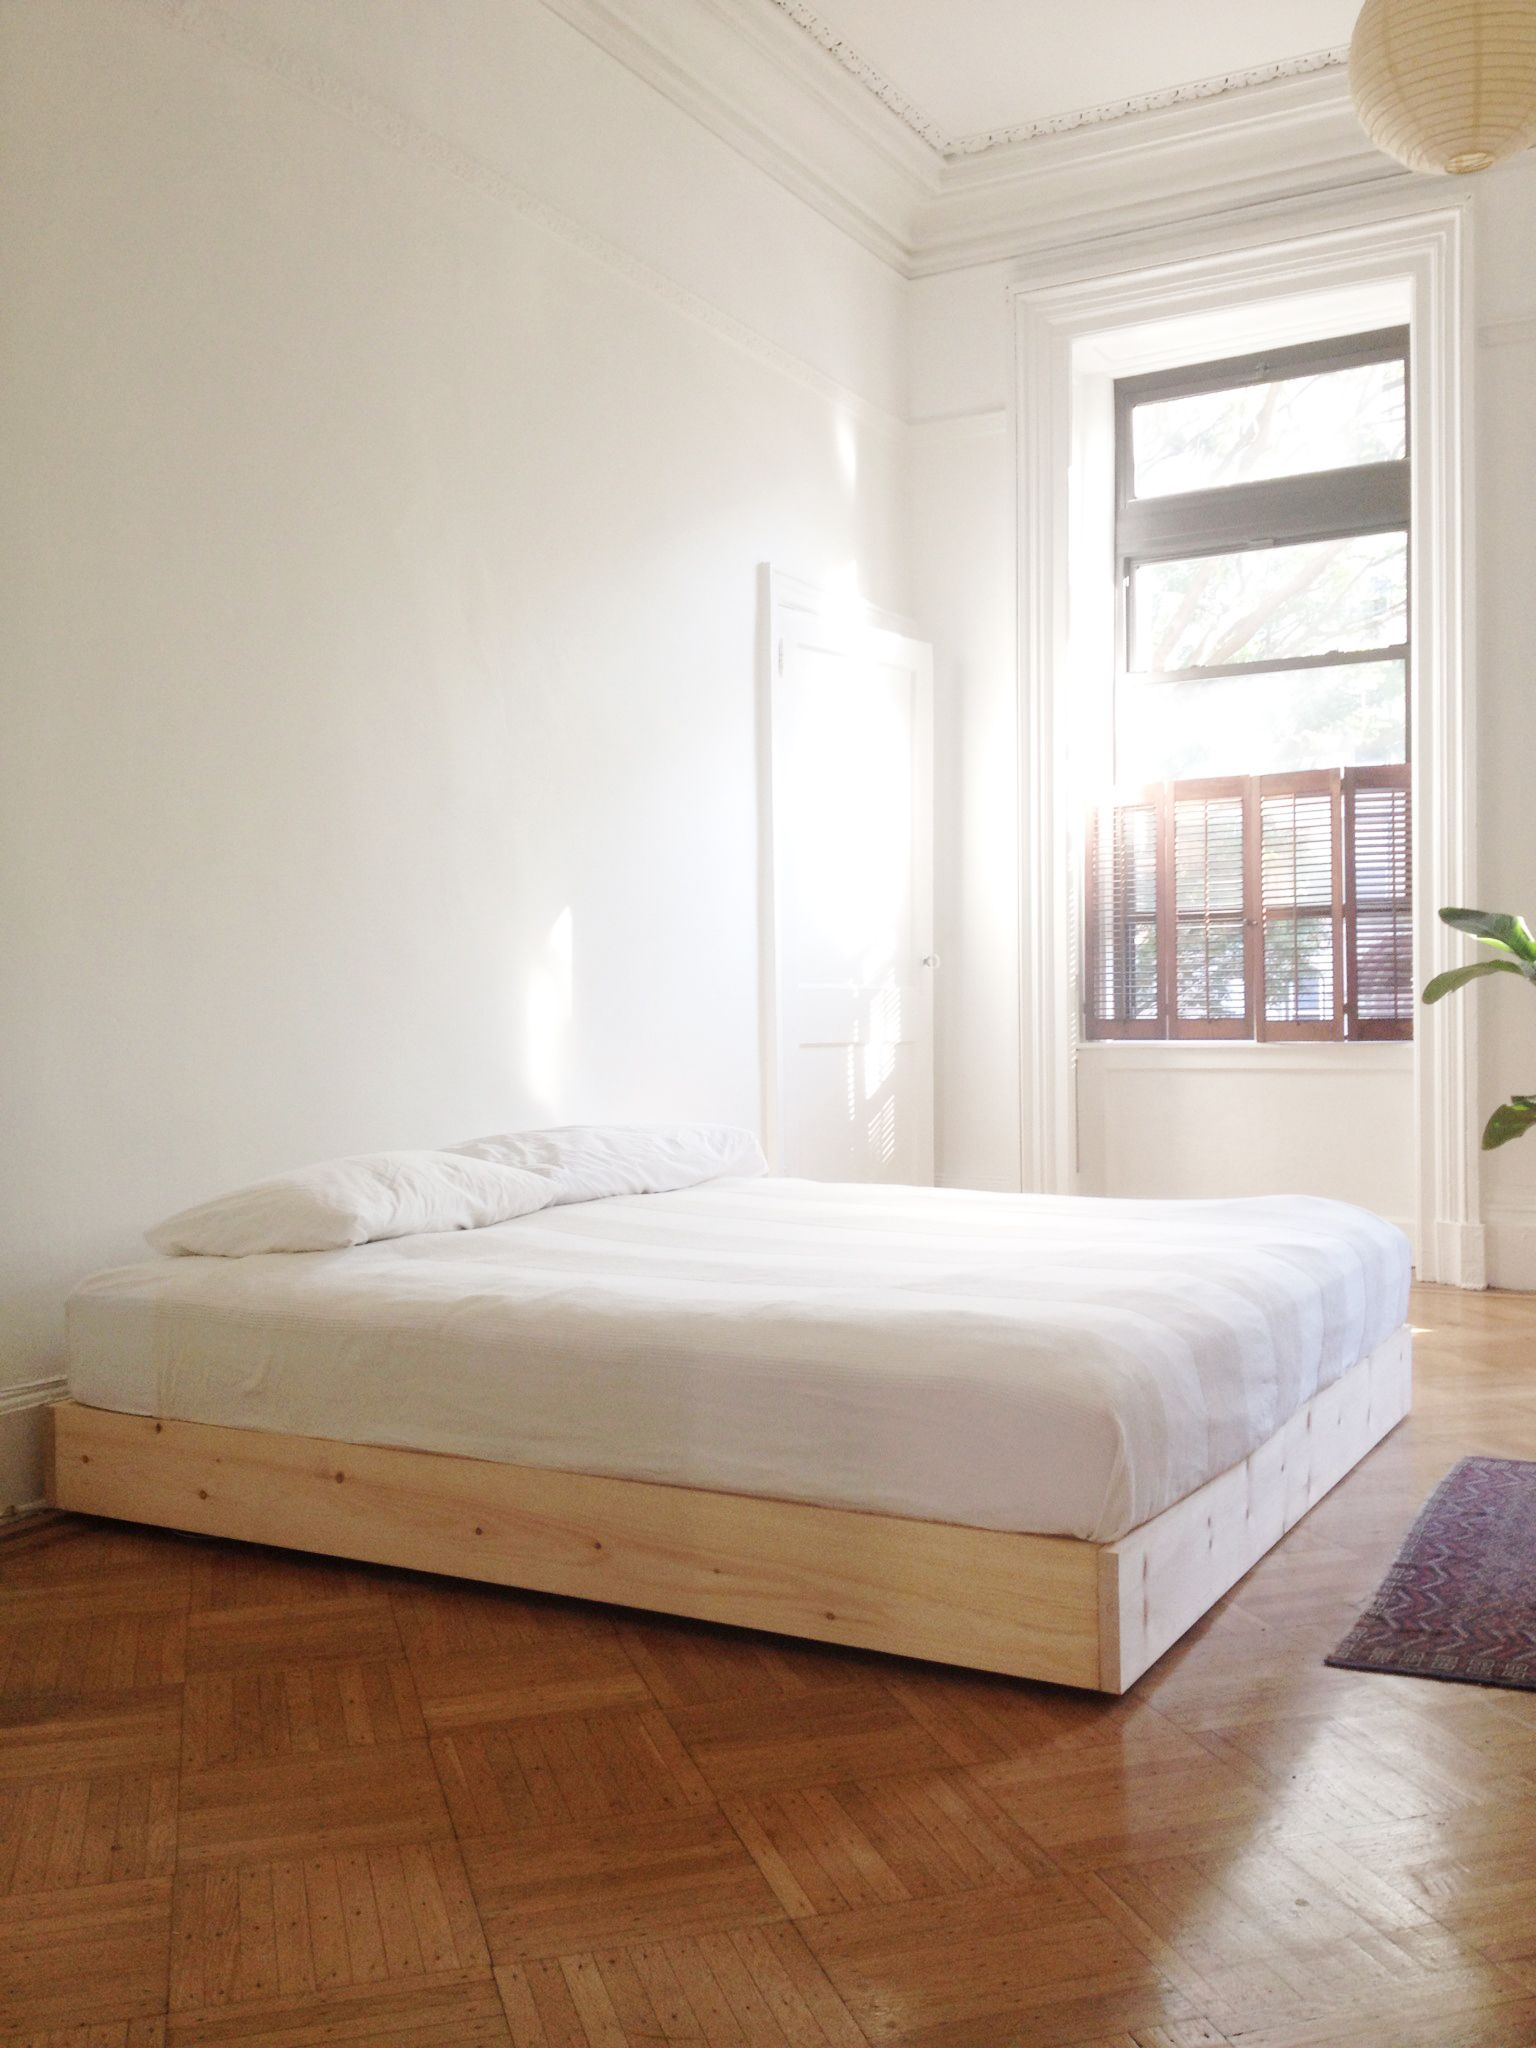 Best 25 simple wood bed frame ideas on pinterest bed for Pallet bed frame with lights pinterest